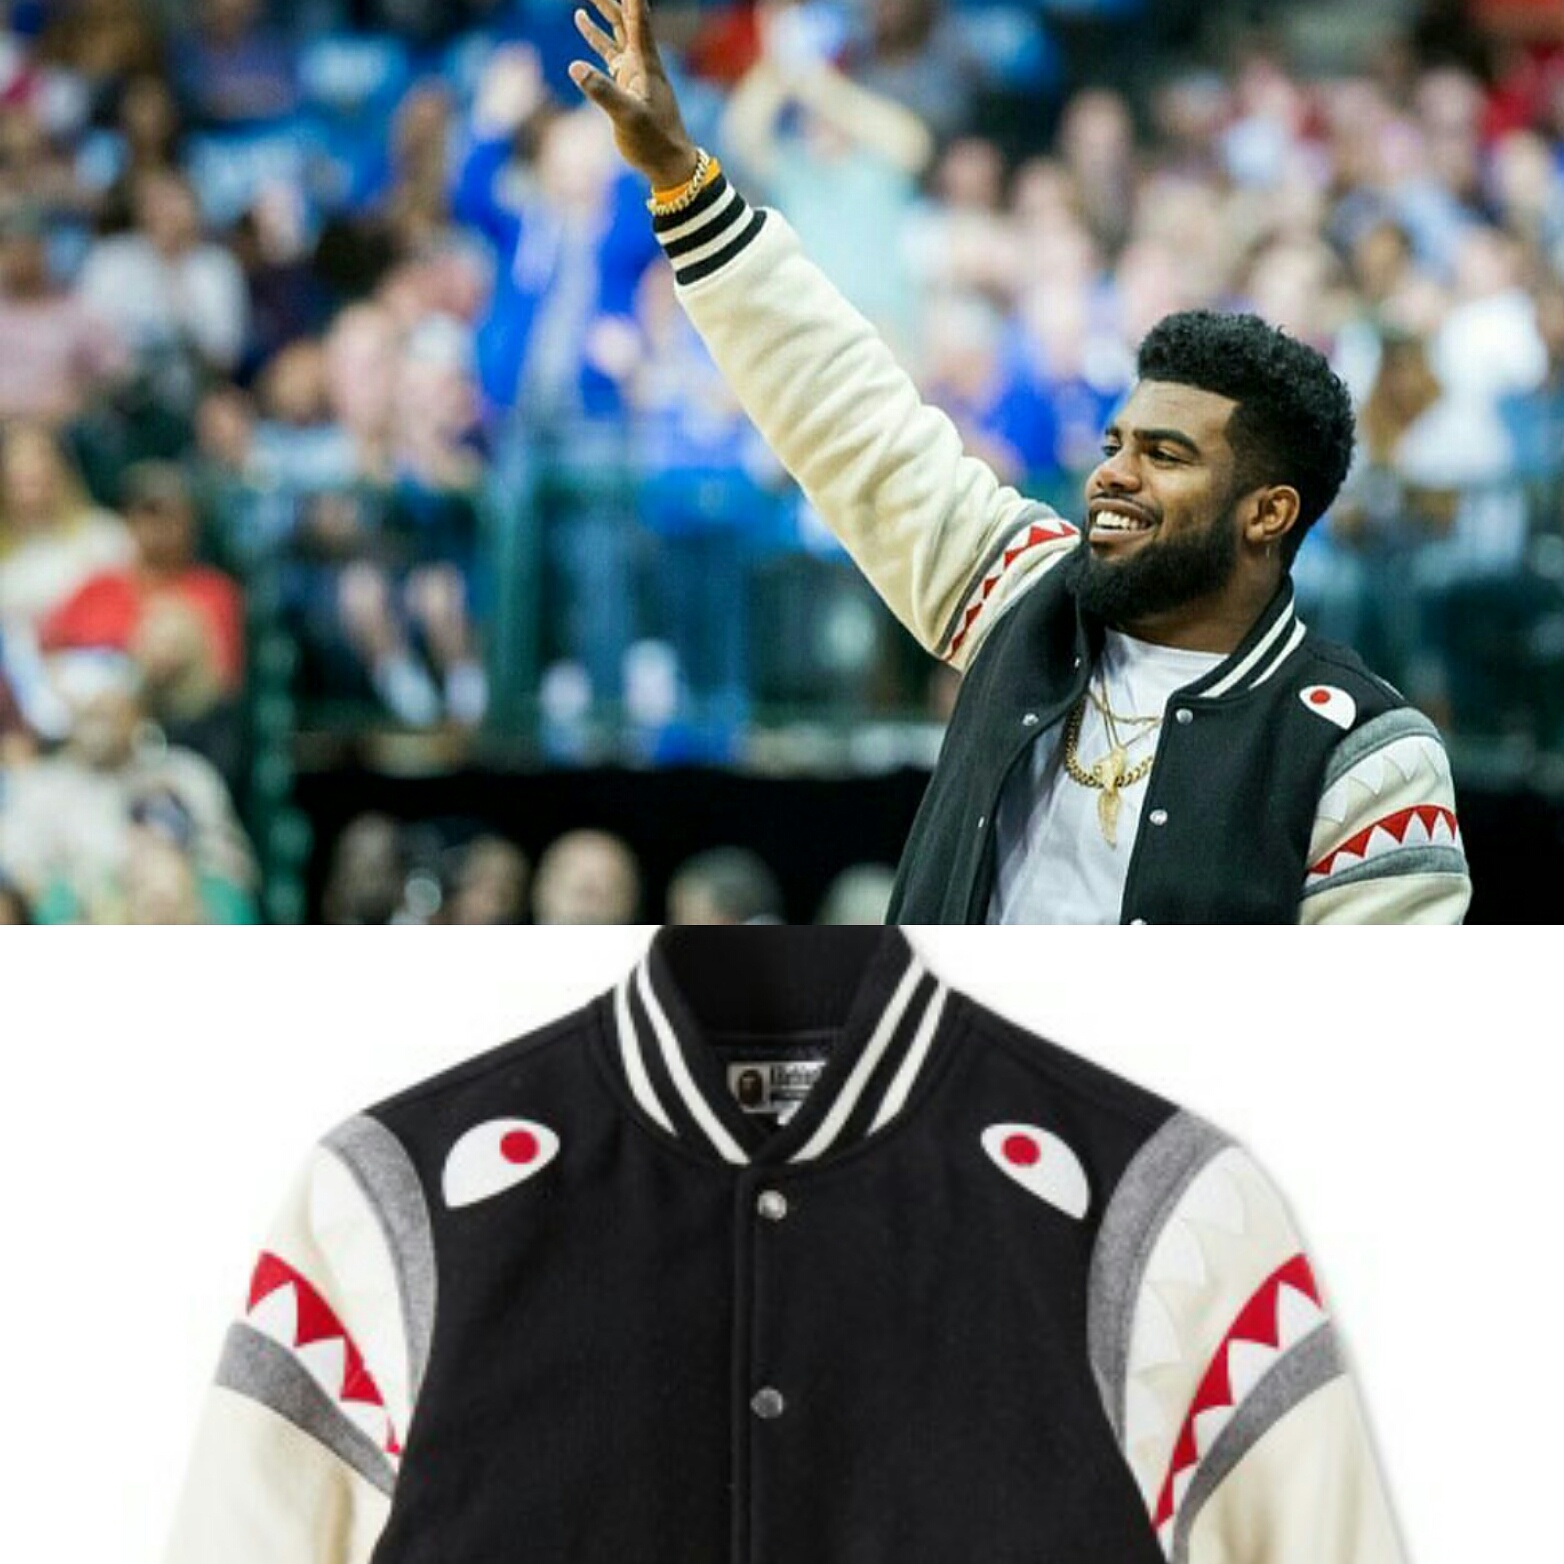 STYLE: Ezekiel Elliott's Instagram A Bathing Ape Bape Shark Shoulder Varsity Jacket